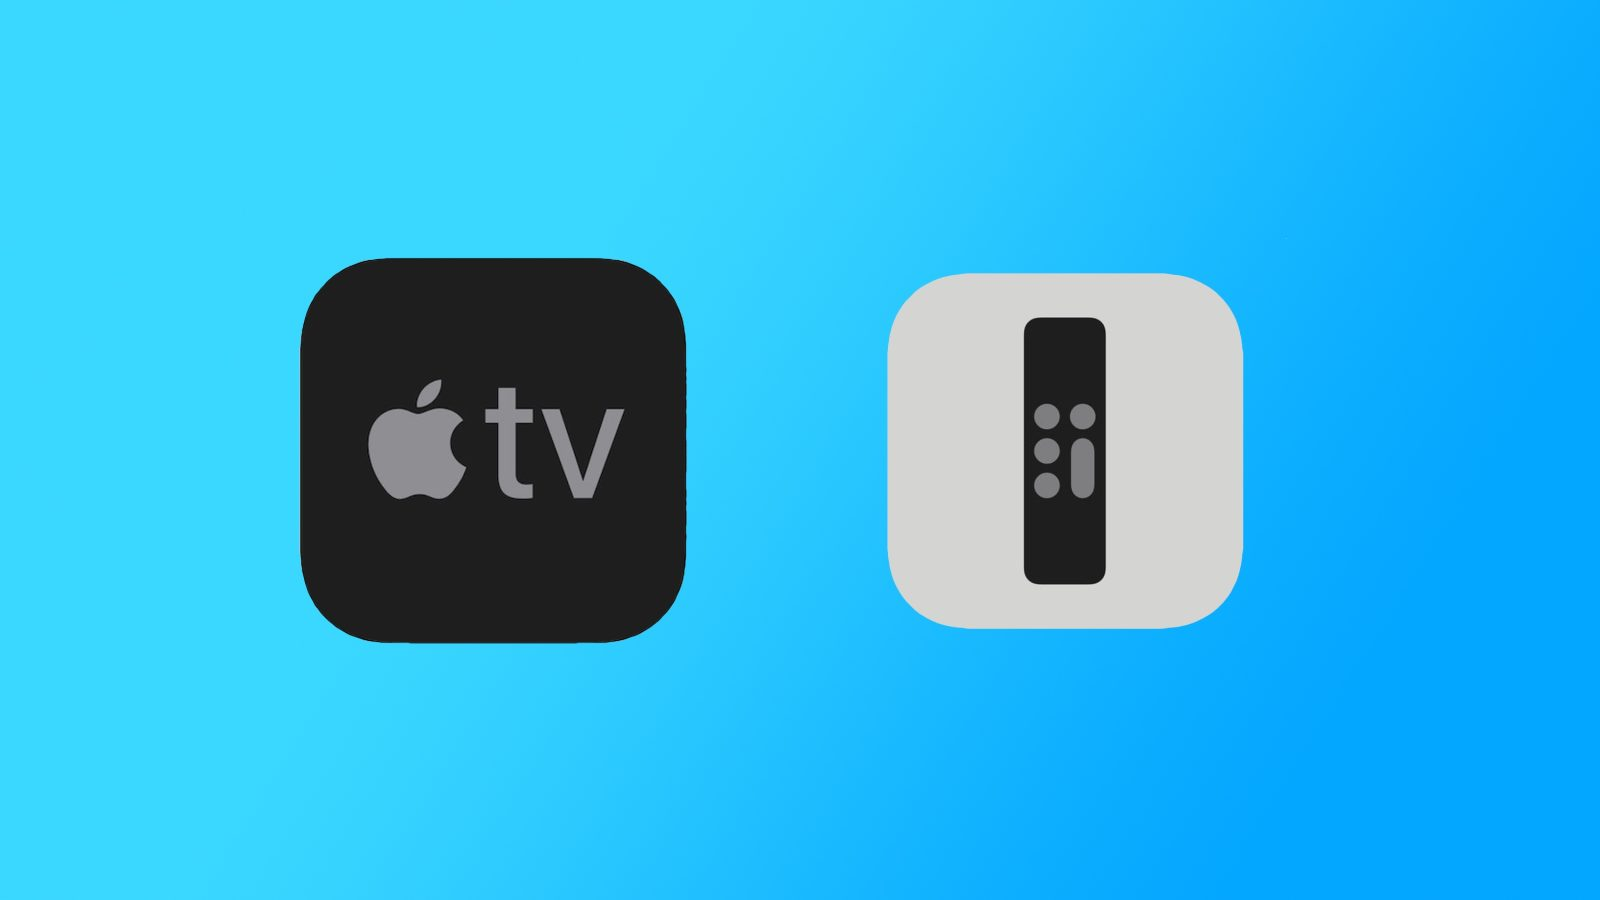 Apple TV Remote app updated with new Siri Remote icon - 9to5Mac